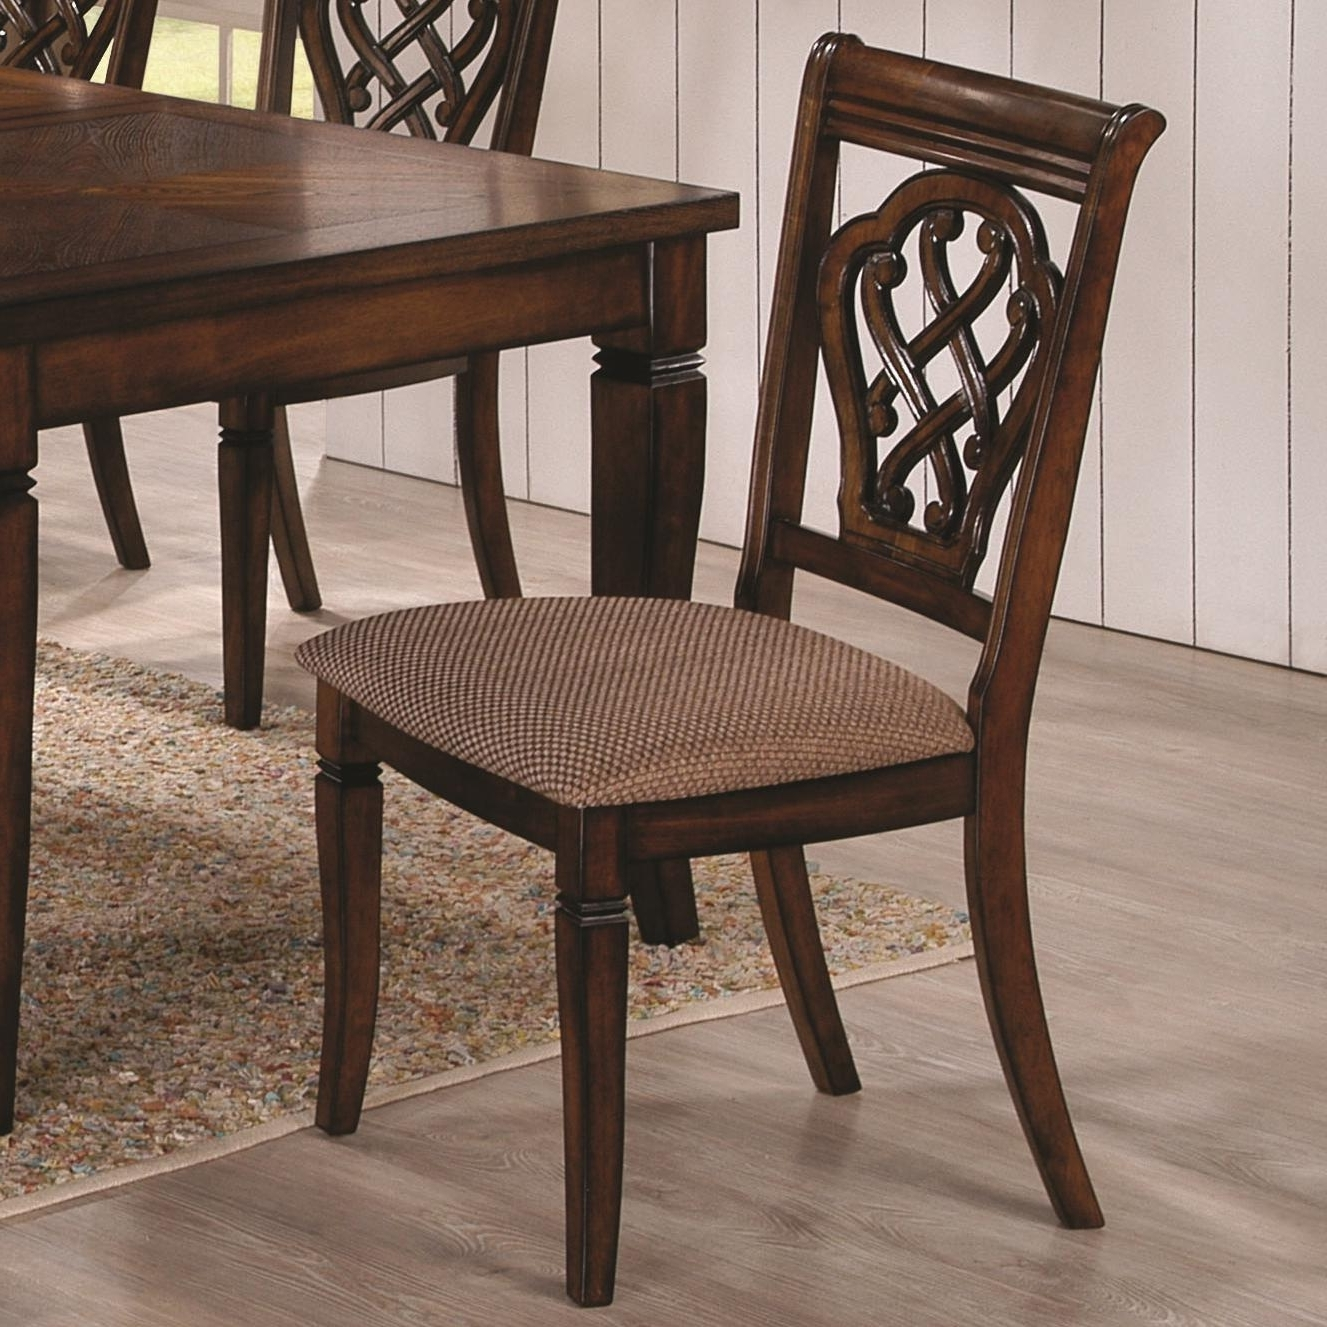 Most Recent Hayden Dining Tables With Regard To 2 Coaster Furniture Hayden Brown Dining Chairs (View 21 of 25)